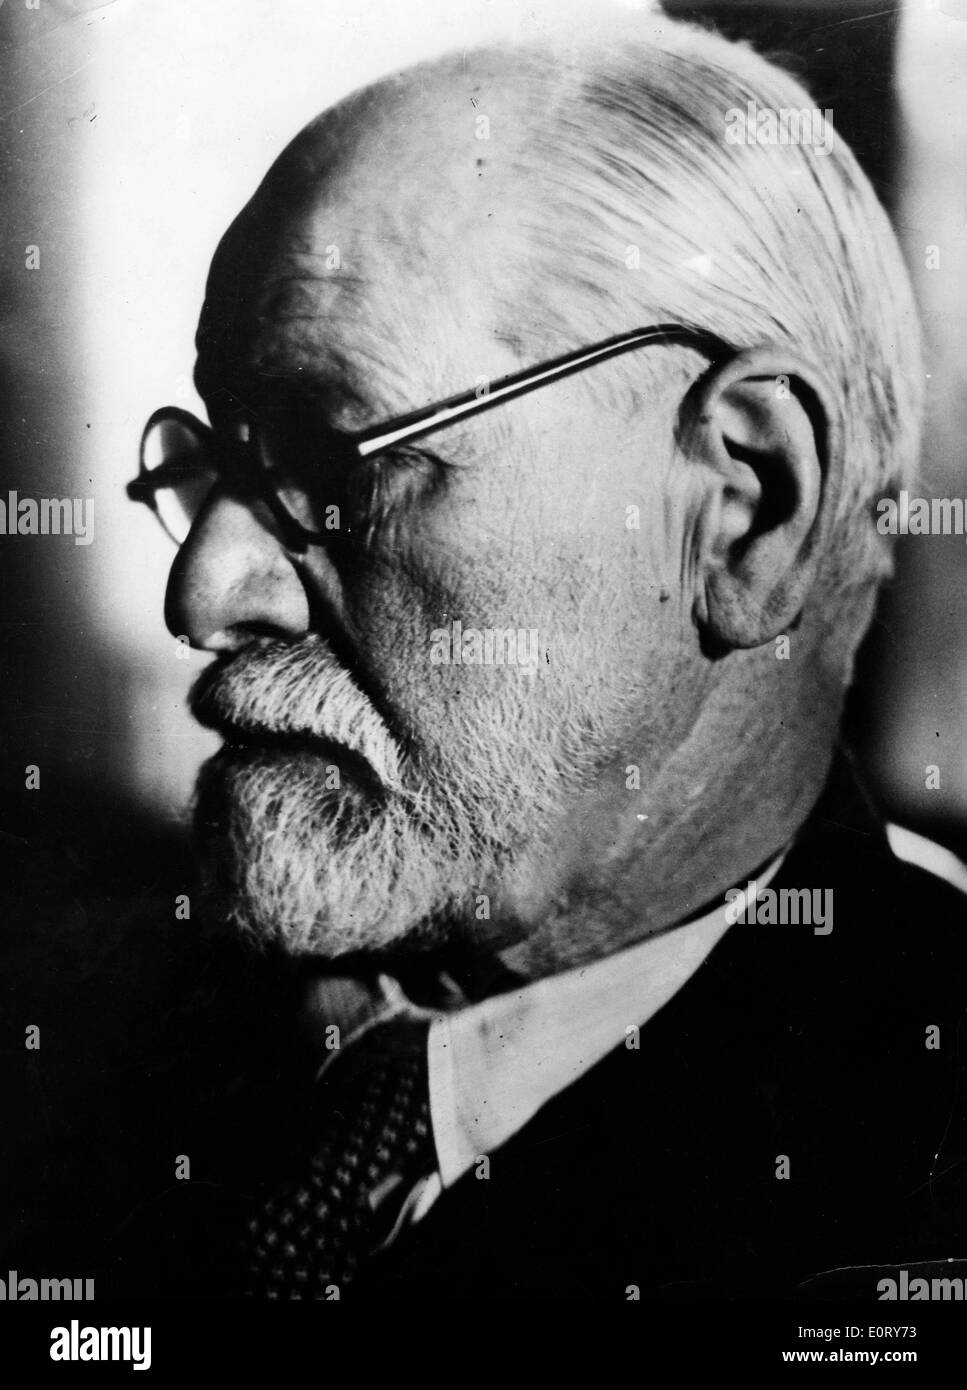 Portrait of the profile of Sigmund Freud - Stock Image